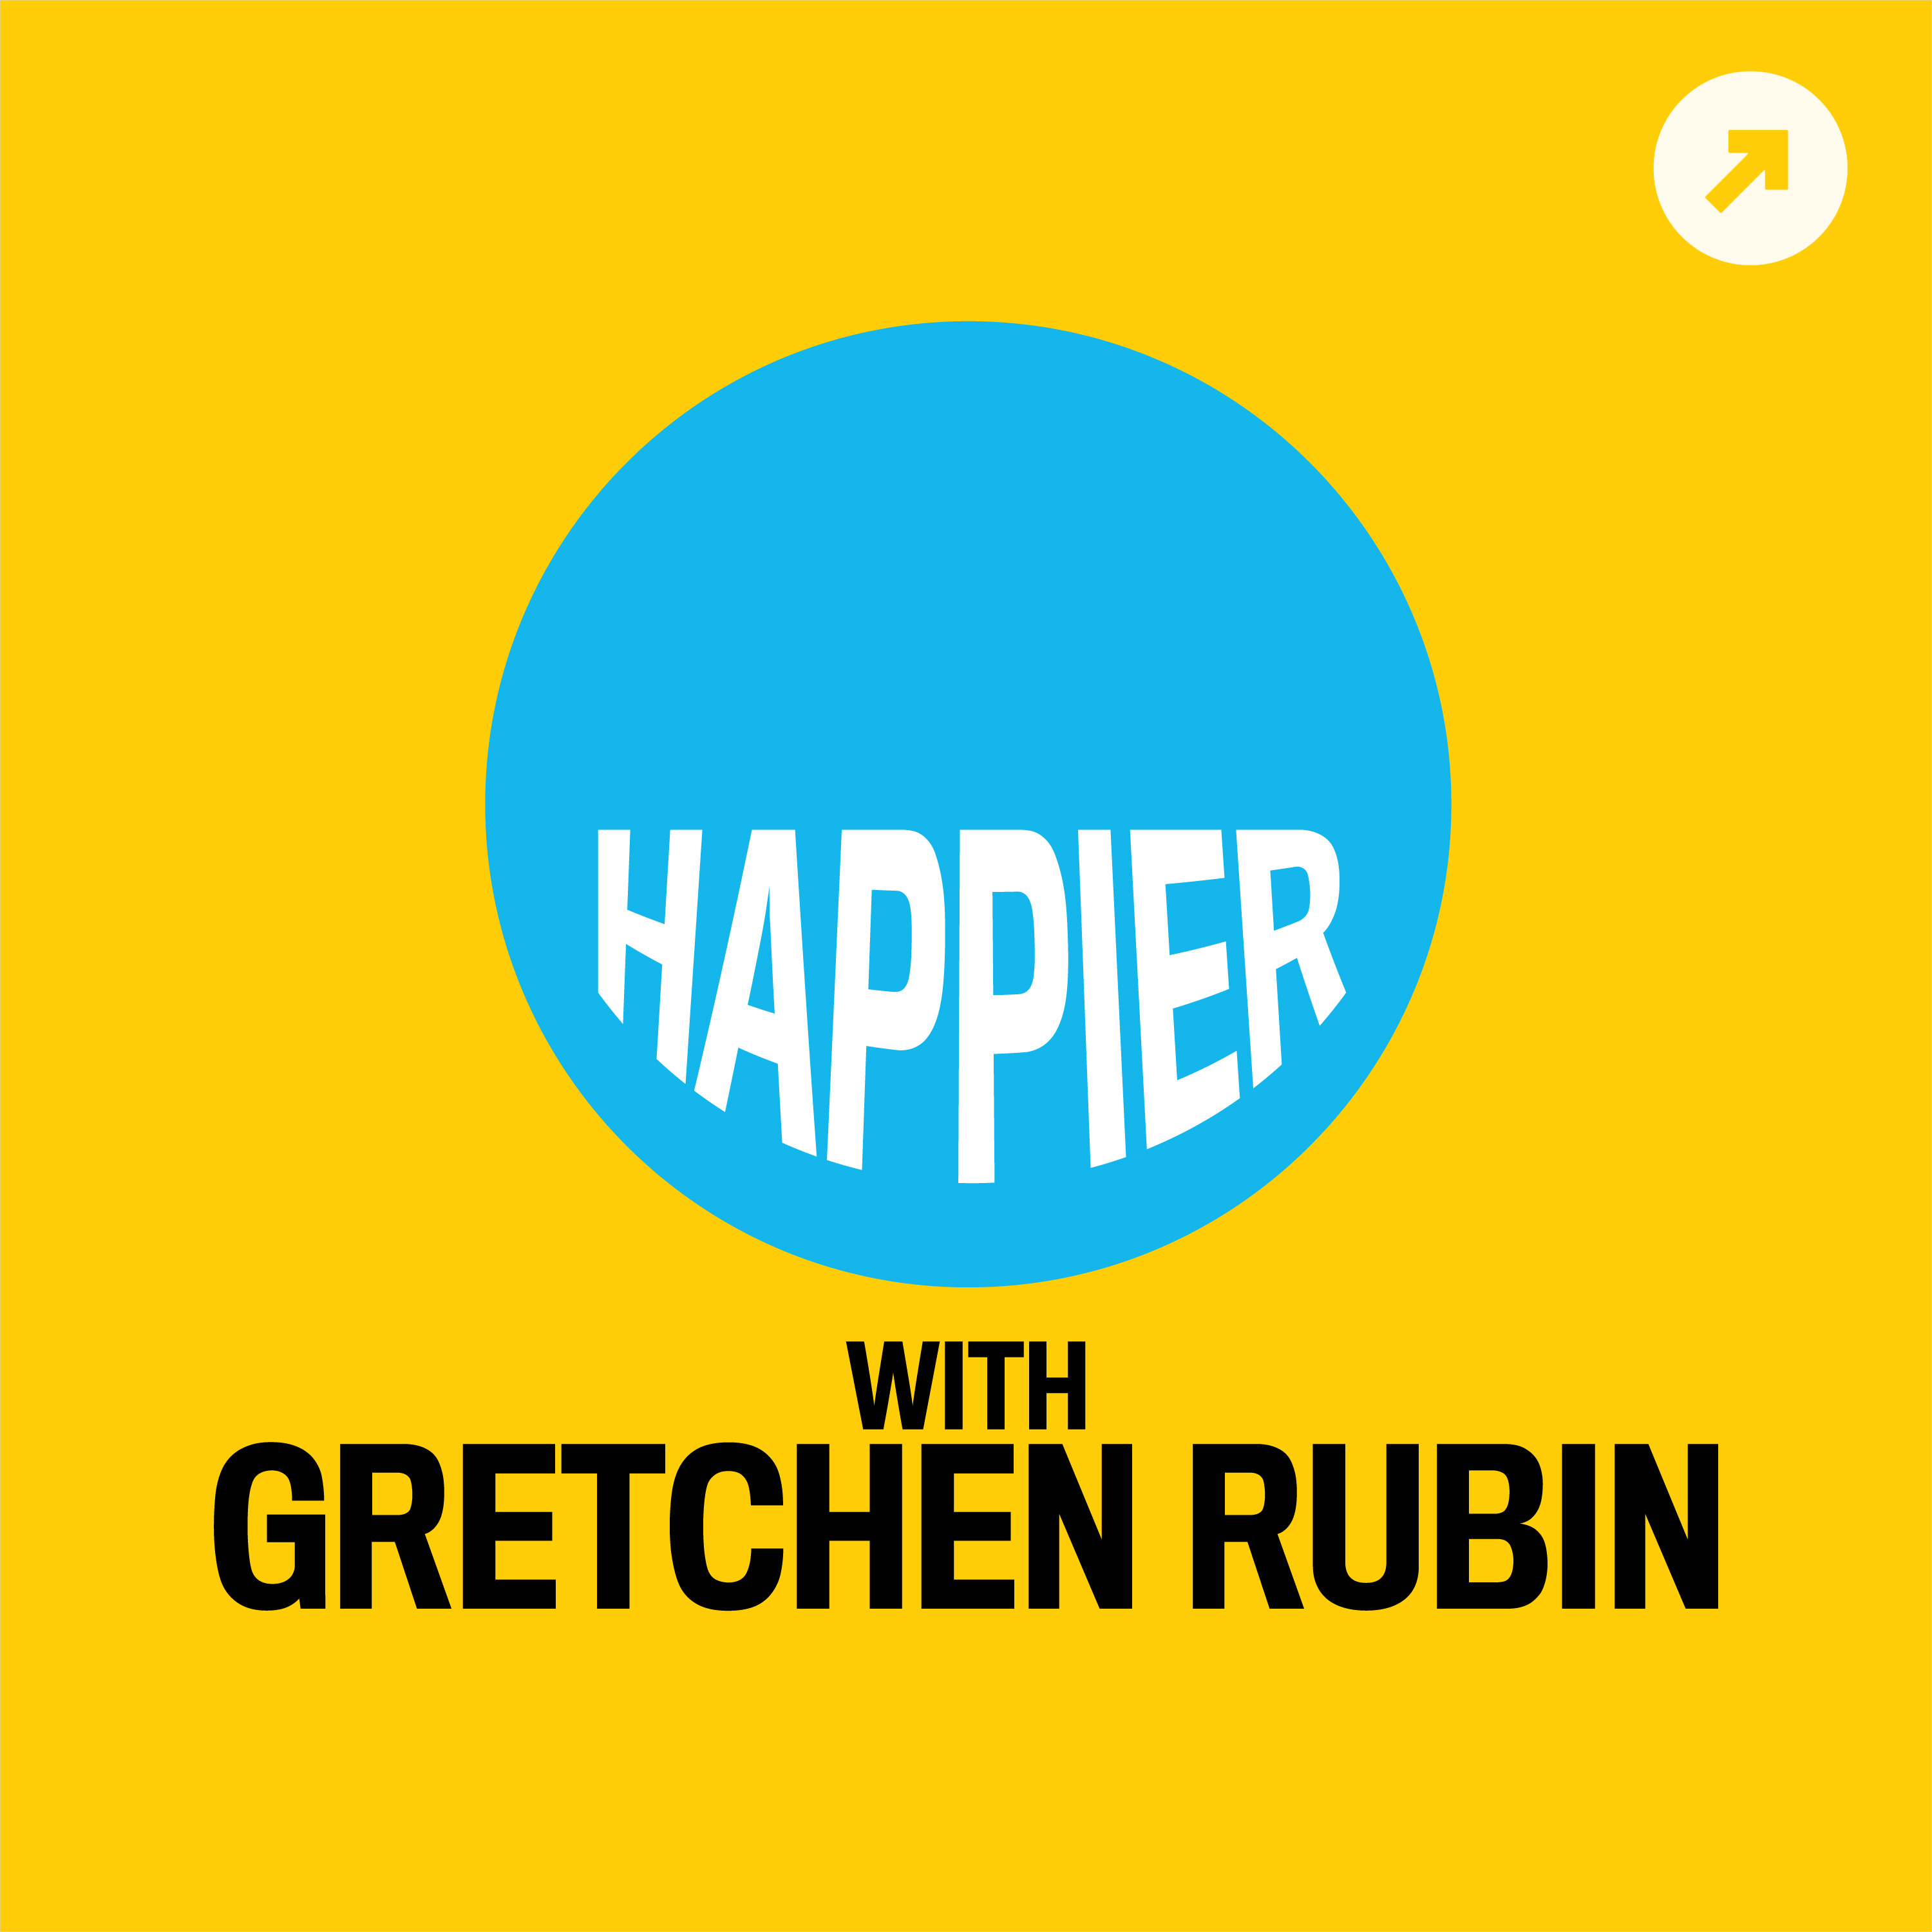 Image of Happier by Gretchen Rubin podcast logo